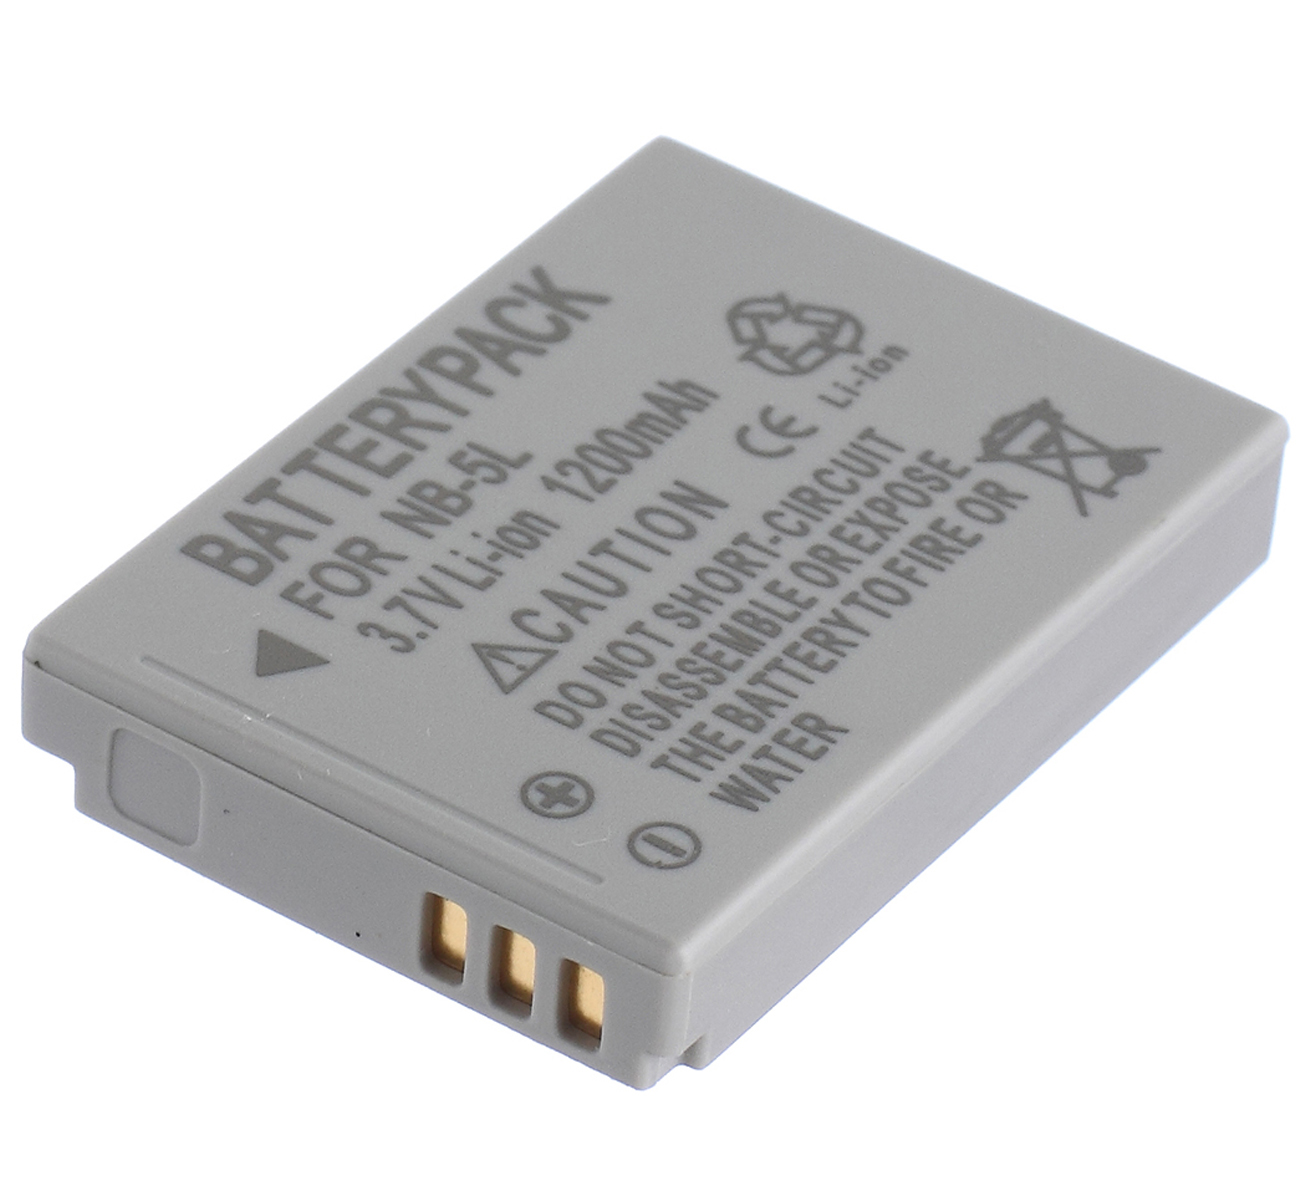 <font><b>Battery</b></font> Pack for <font><b>Canon</b></font> PowerShot SX200, SX200IS, SX210 IS, SX210IS, SX230 HS, <font><b>SX230HS</b></font>, IXUS 90 IS, IXUS90IS Digital Camera image